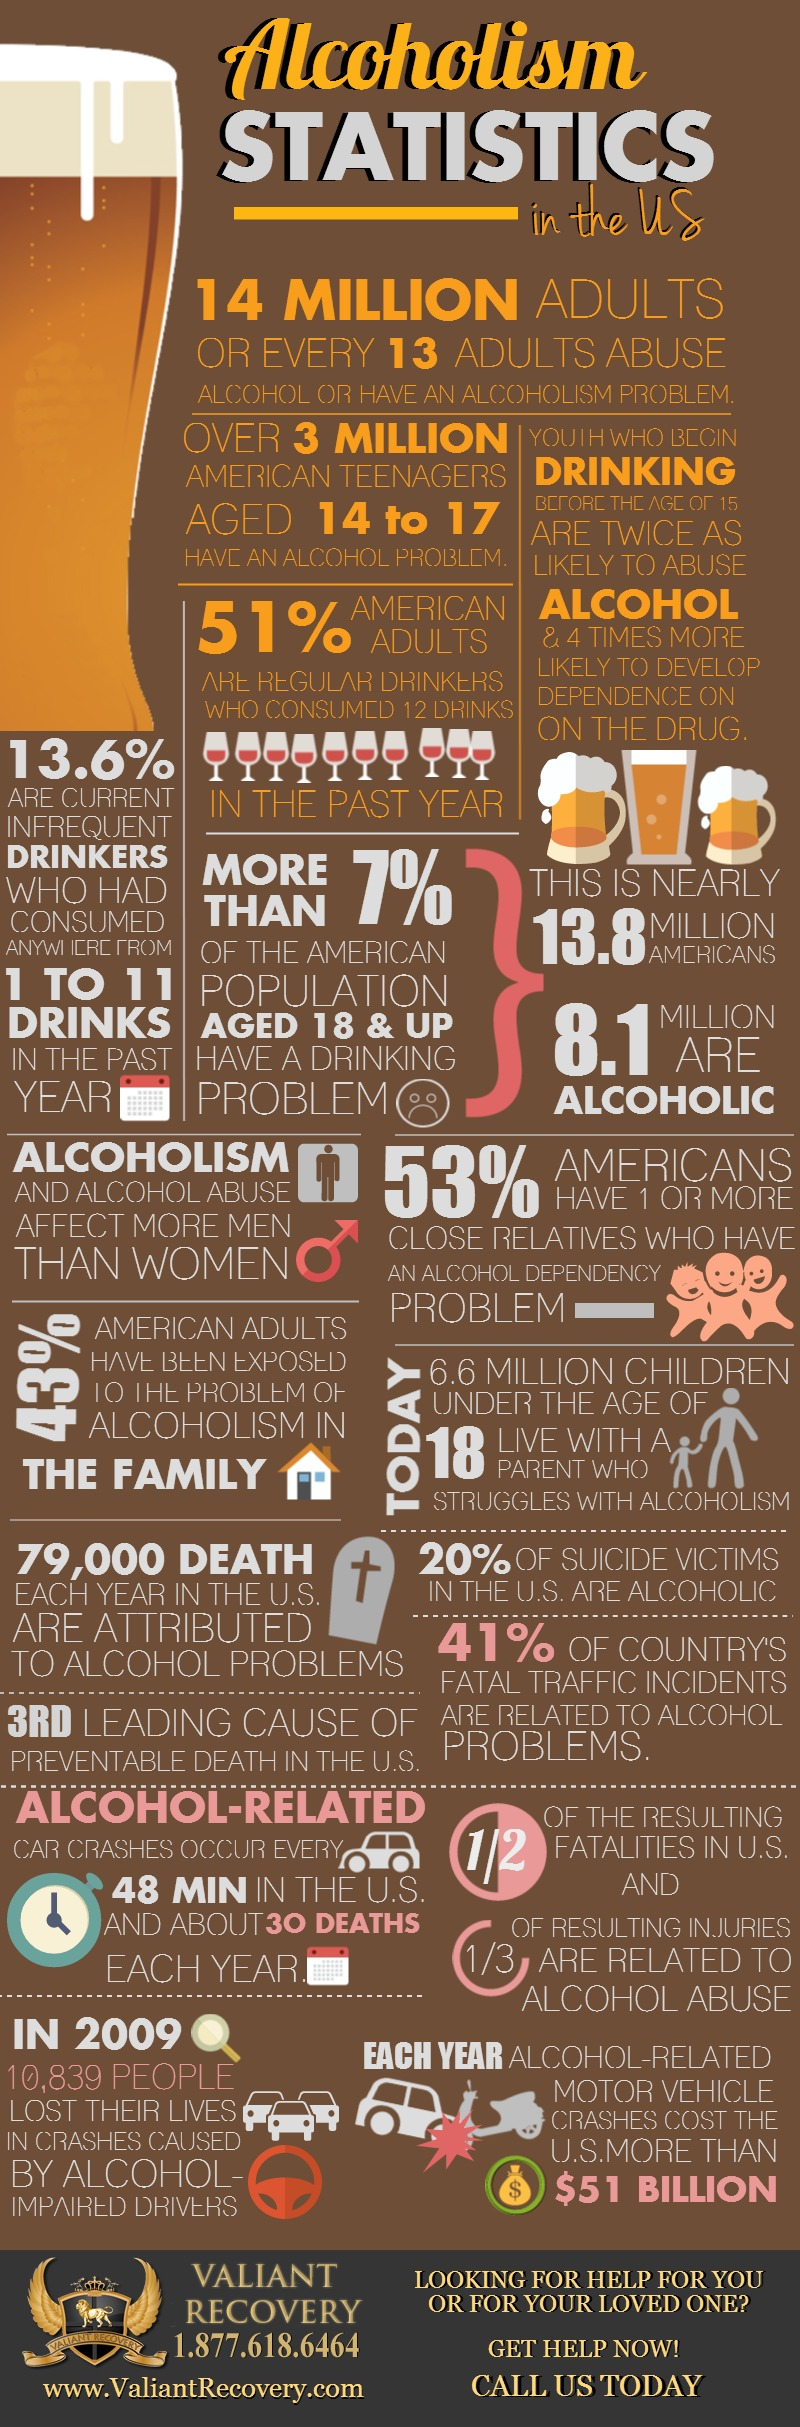 Alcoholism Statistics in the US